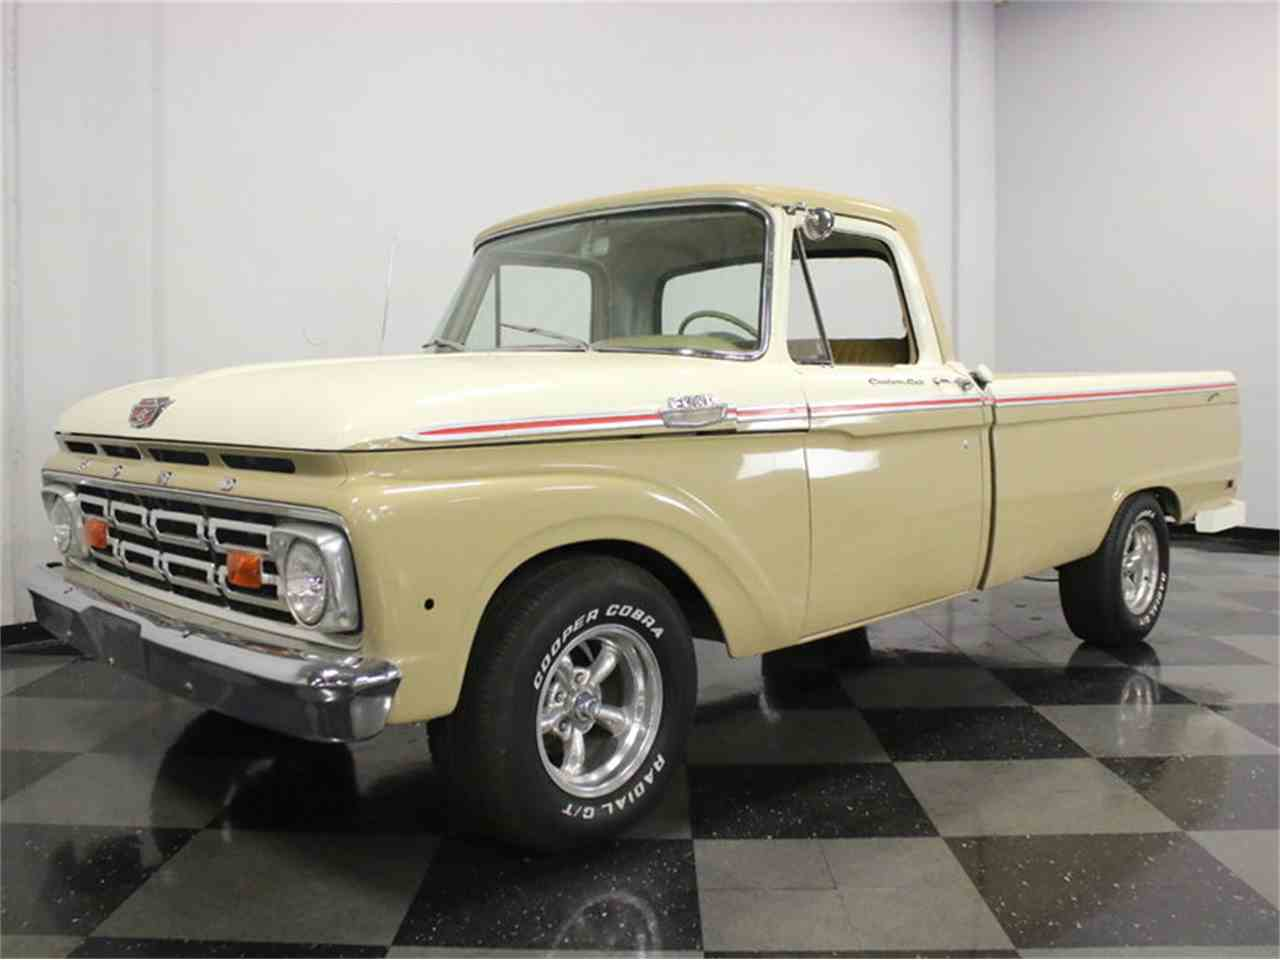 Ford F100 For Sale Craigslist >> 1964 Ford F100 for Sale | ClassicCars.com | CC-962495